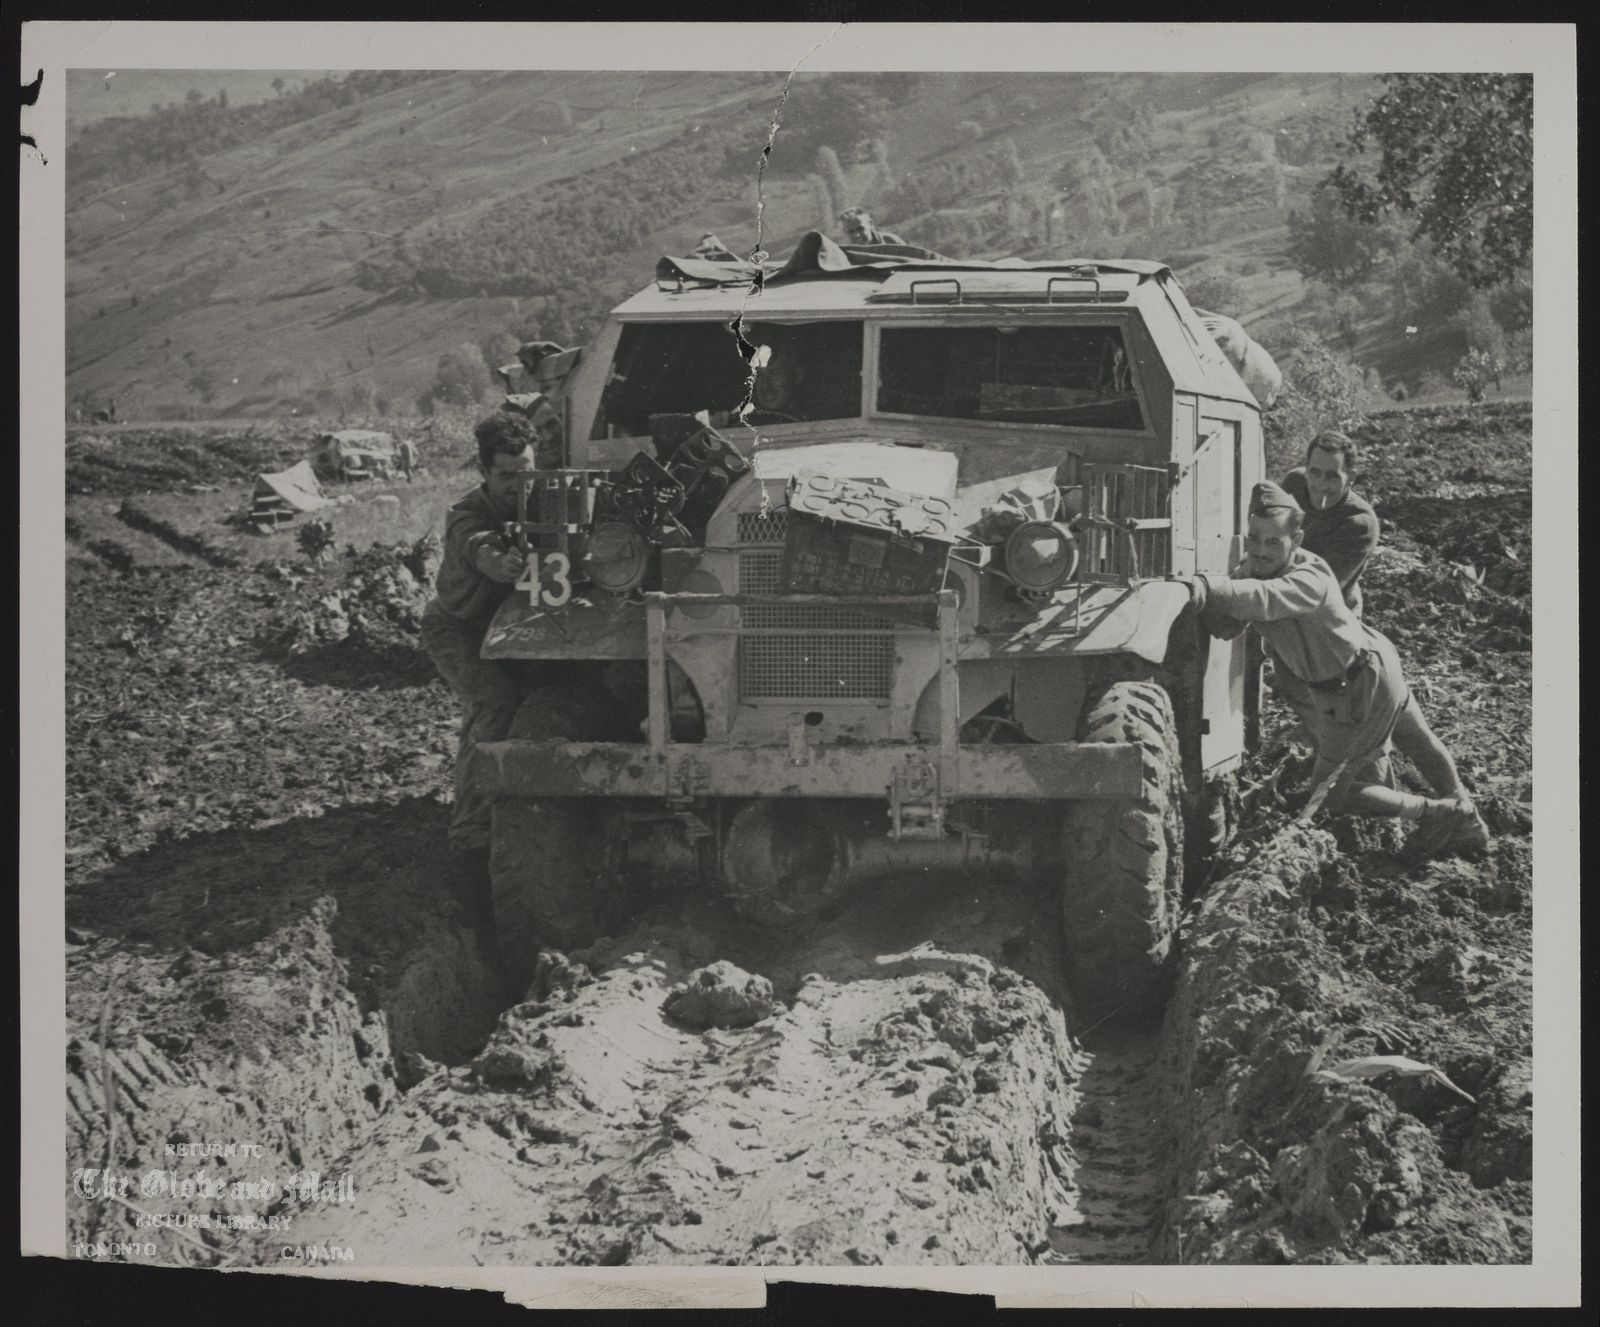 WORLD WAR II Canada Forces in Italy (ADVANCE) MEN AND MACHINE—Men of the 10th Field Battery, 4th Canadian Division, help field artillery tractor plow through muddy fields during the Allied advance in Italy during the Second World War. This scene is near Torella on Oct. 30, 1943, less than two months after the Allies landed in Italy 20 years ago. (CP Photo from National Defence)